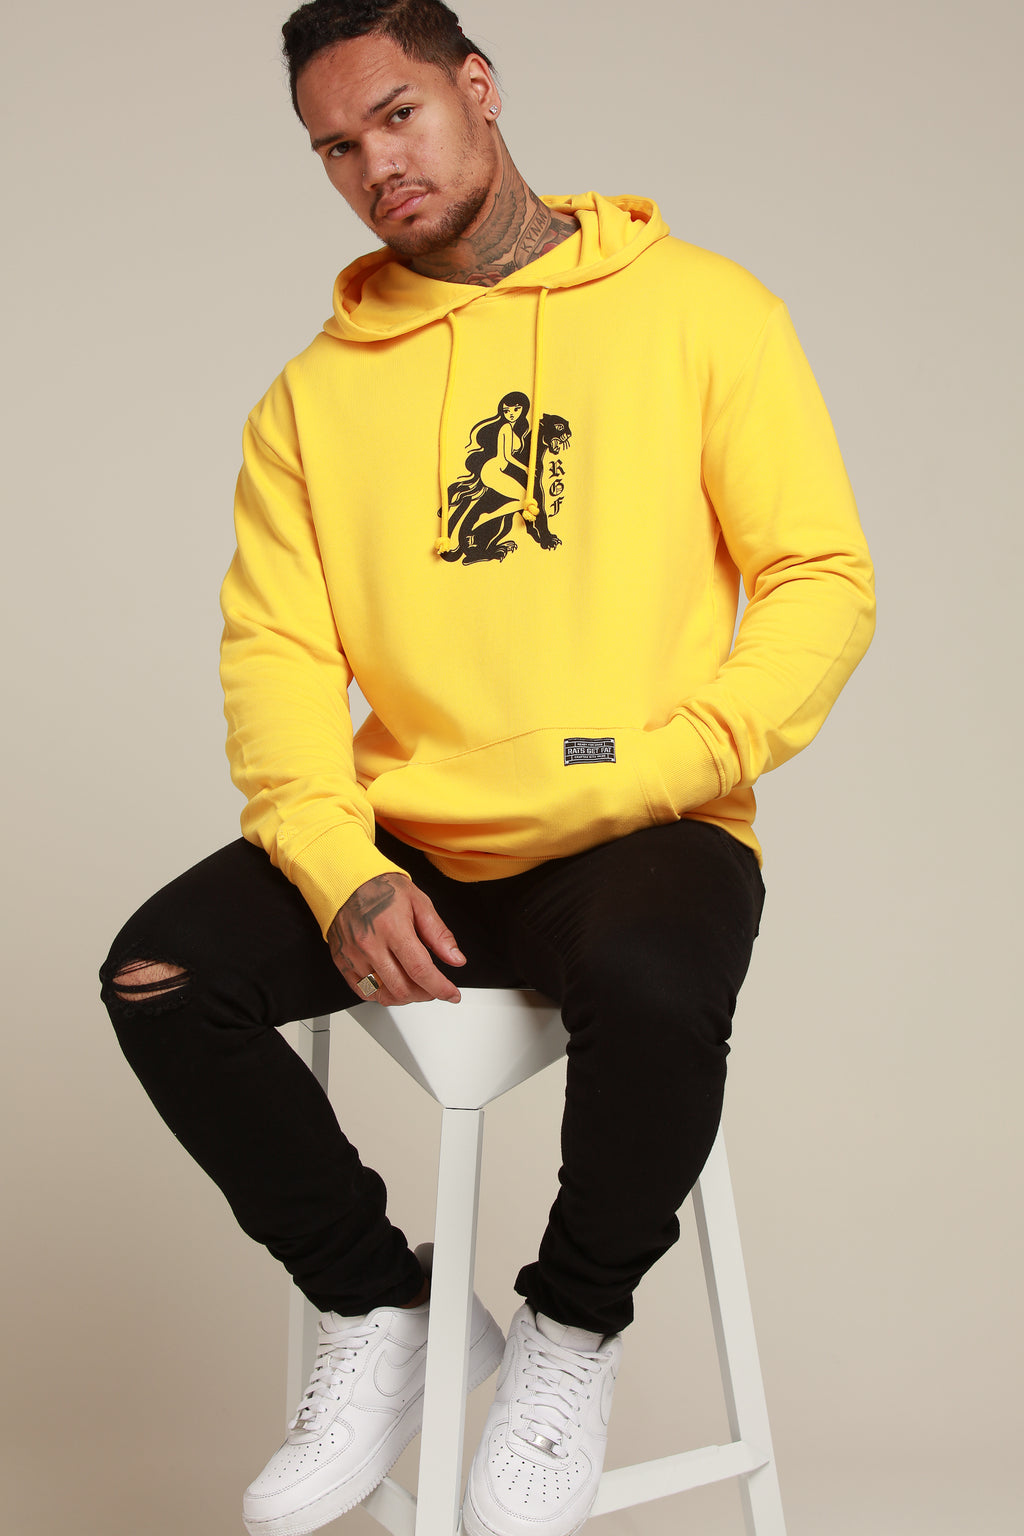 LY PANTHER HOOD - Mustard